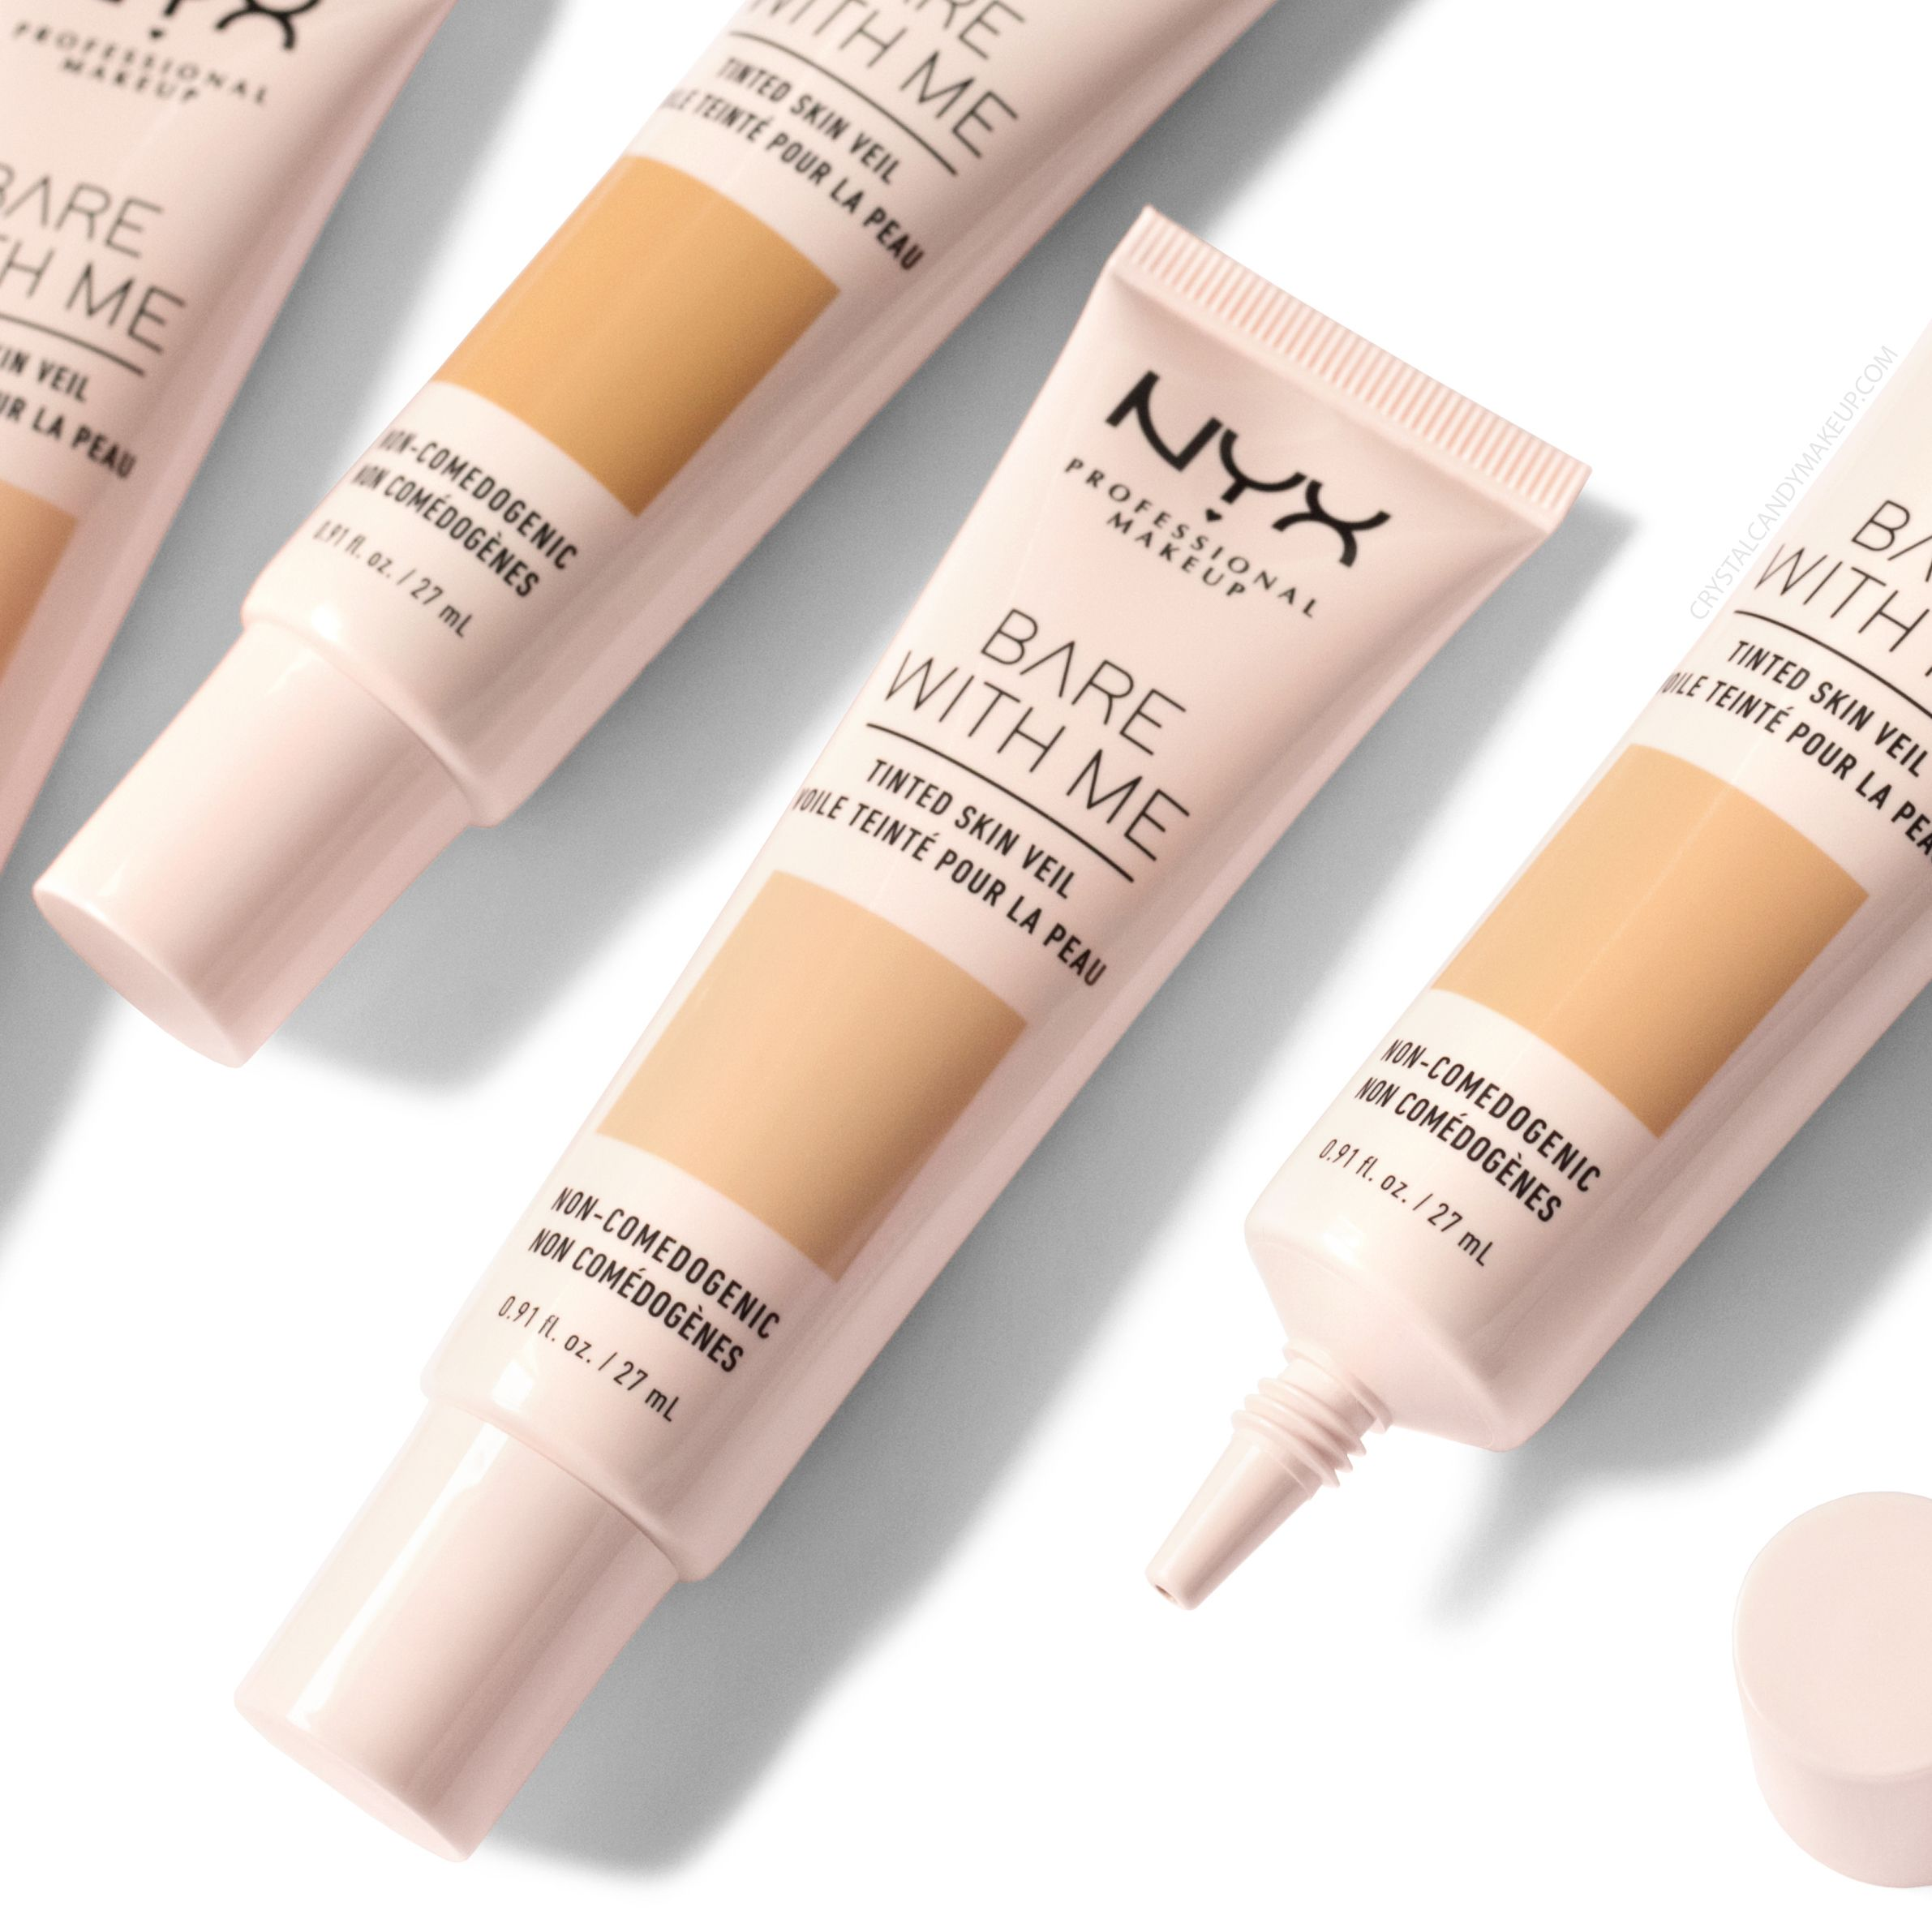 Nyx S New Bare With Me Tinted Skin Veil Review Swatches Before After Photos And Mac Foundat Foundation Shades Nyx Professional Makeup Mac Foundation Shades